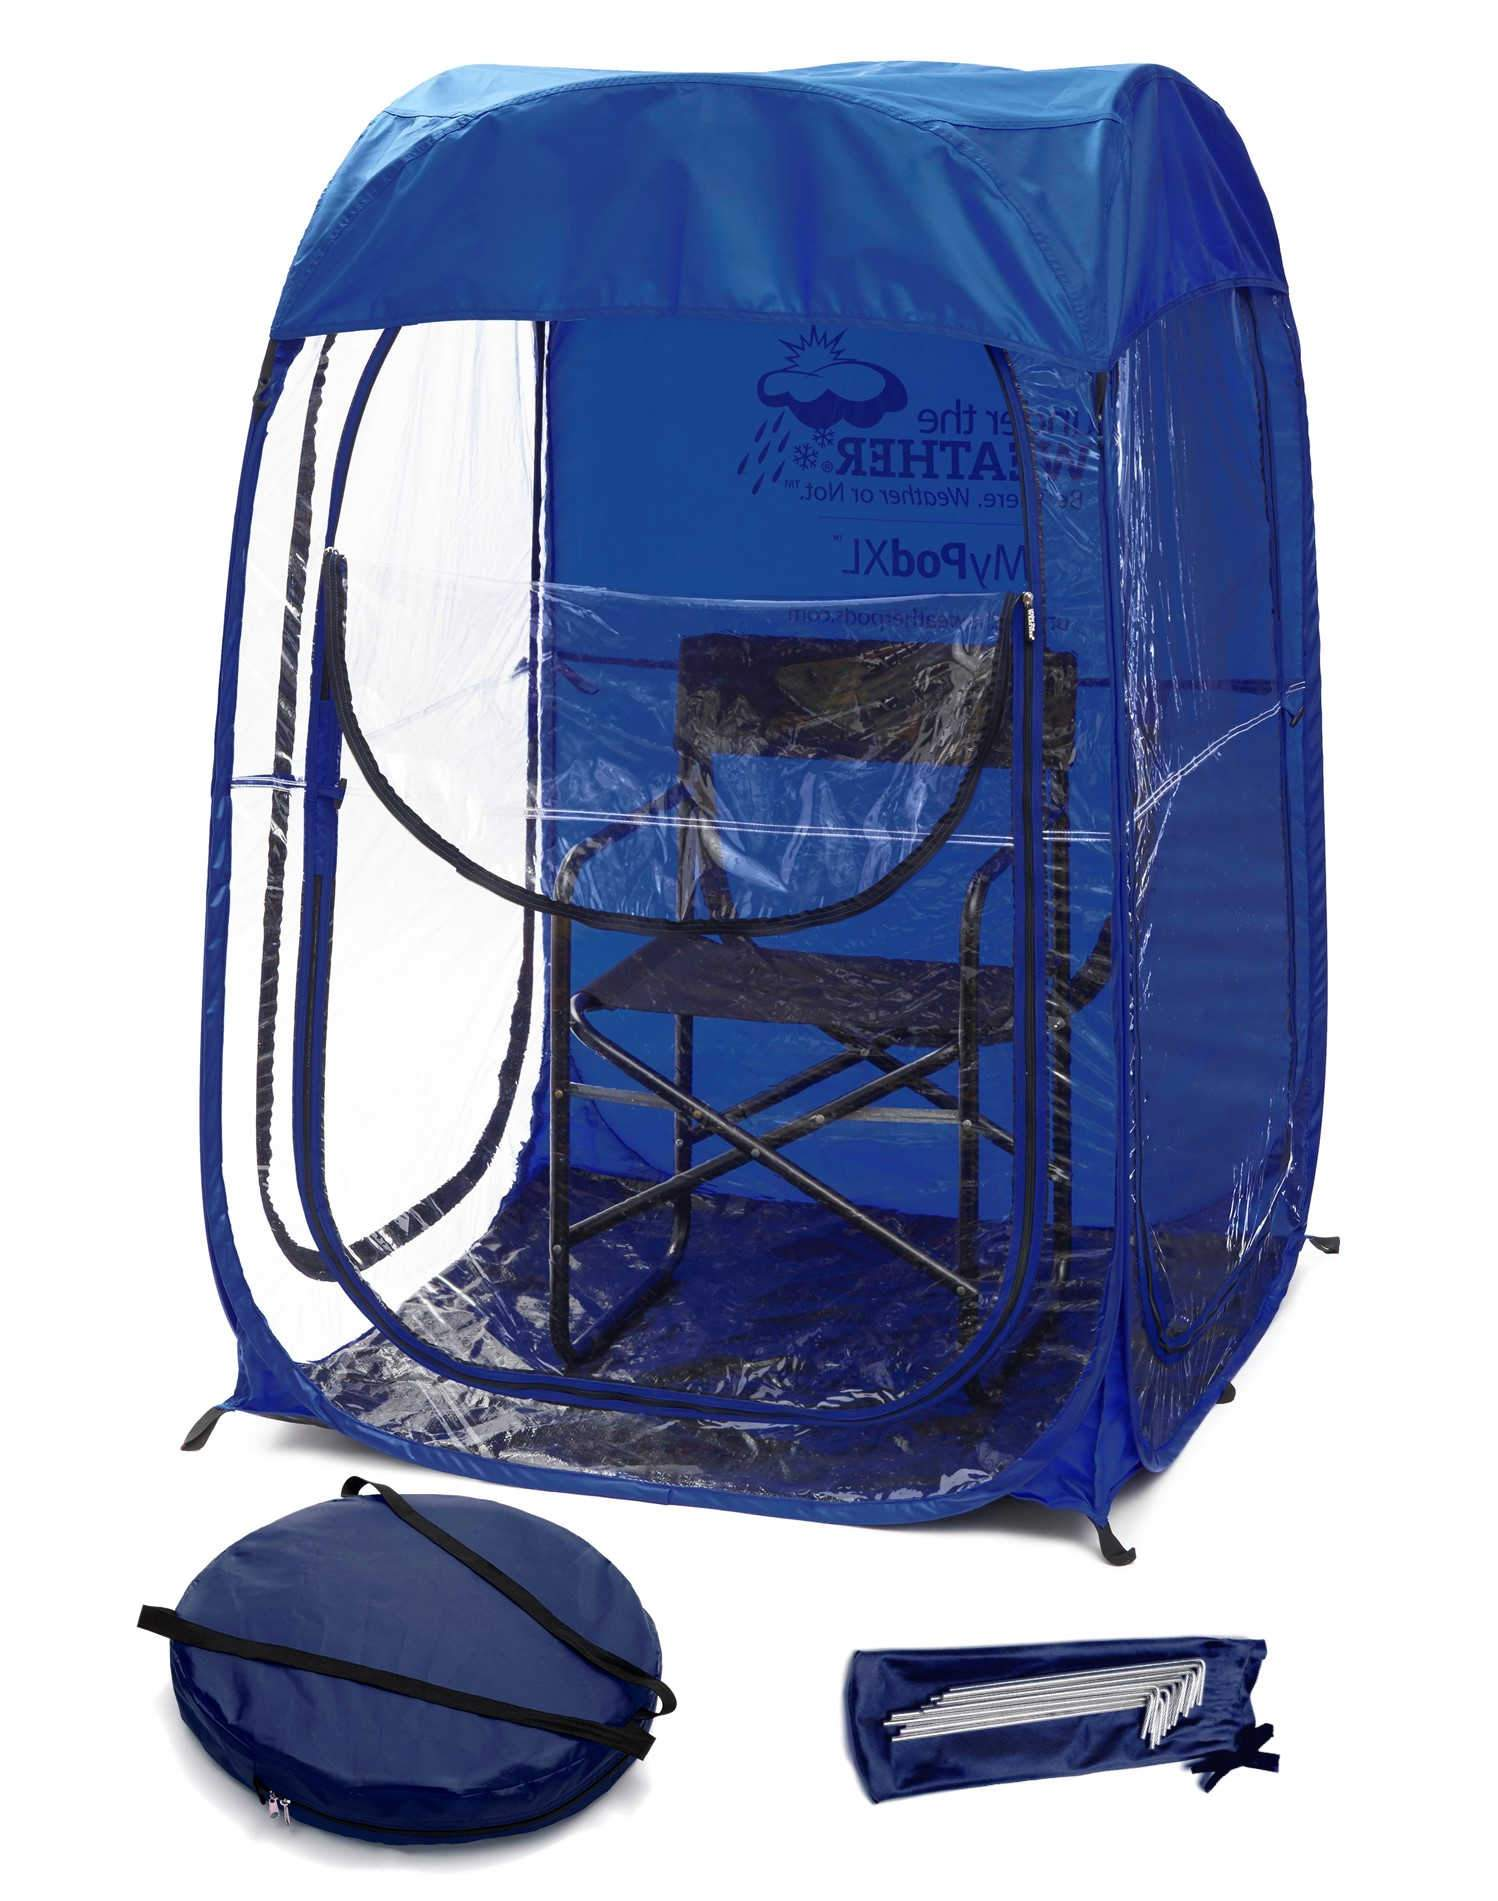 Under the Weather® Pods The original personal popup